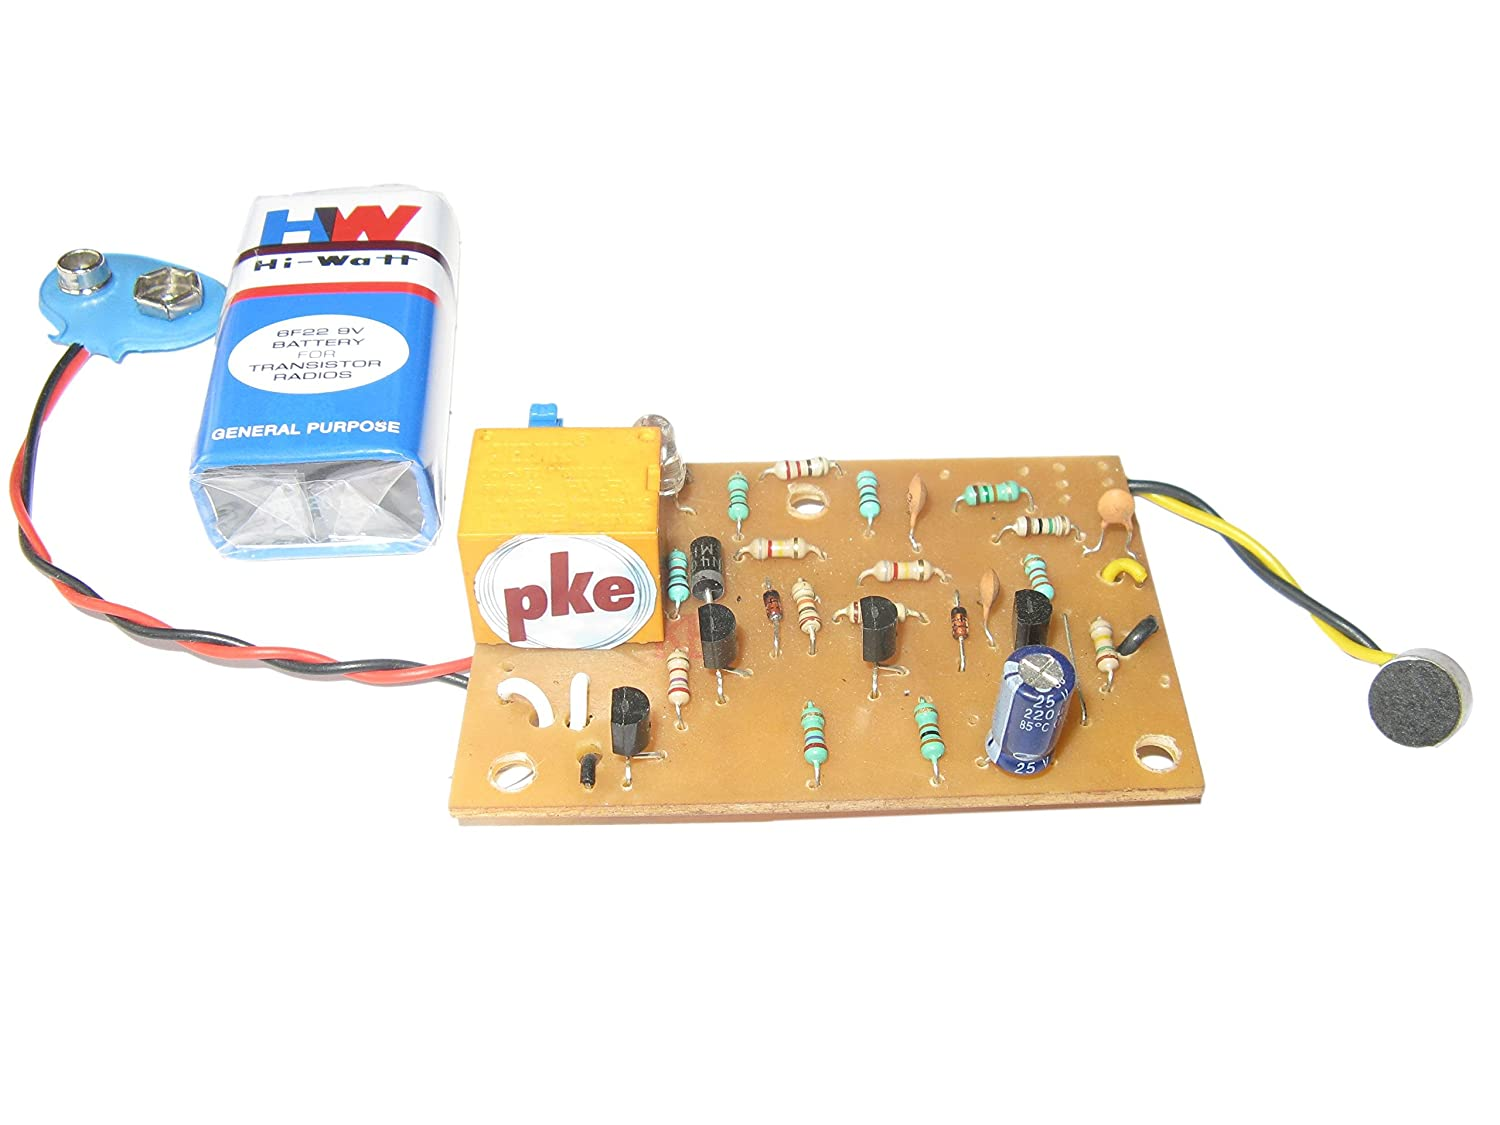 pke Clap Switch - Sound Control Circuit project: Amazon.in: Amazon.in